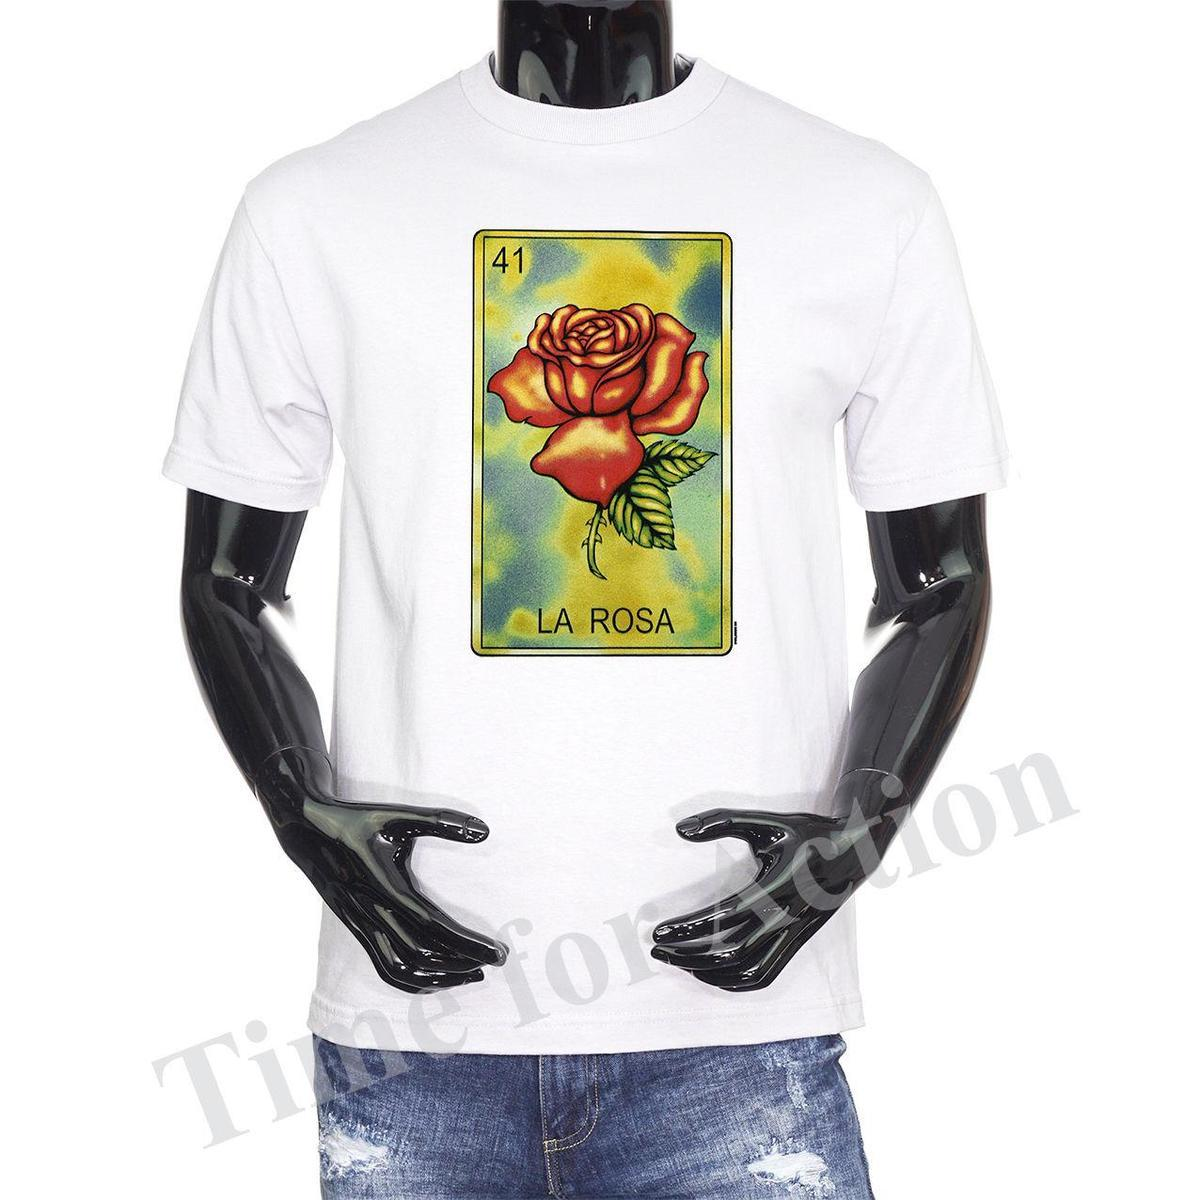 6d3f31fc Loteria Card La Rosa Mexican Card Game Graphic T Shirt Fashion Mens Short  Sleeve Cheap Sale O Neck T Shirt One Day Only T Shirts Limited T Shirts 24  Hours ...